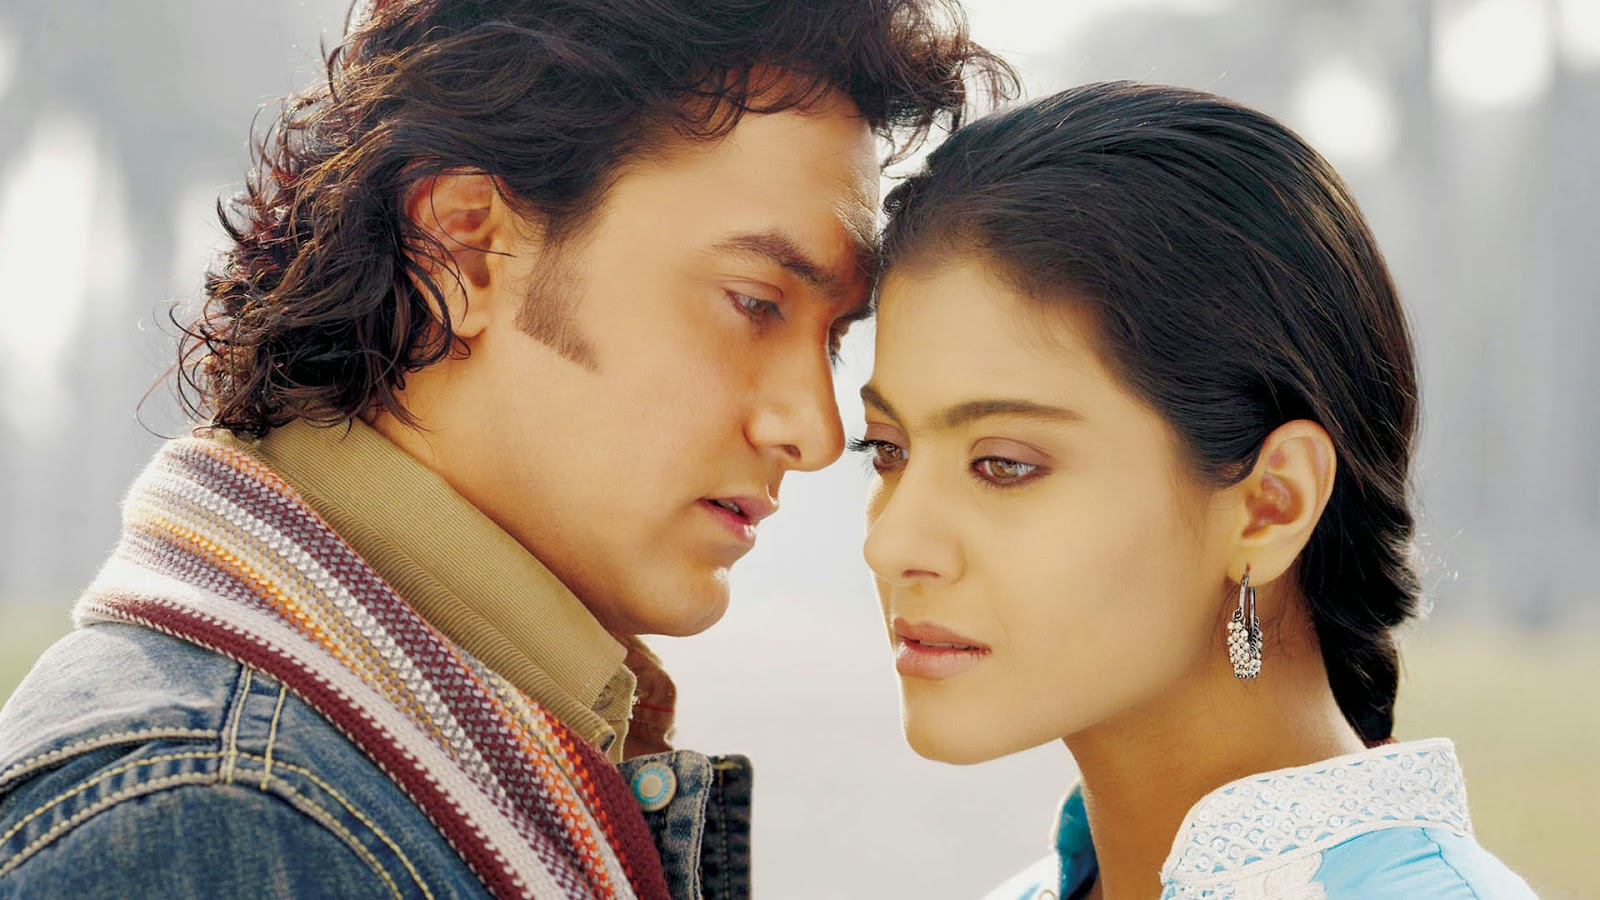 Cuples-Fanna-best bollywood onscreen couples of all time